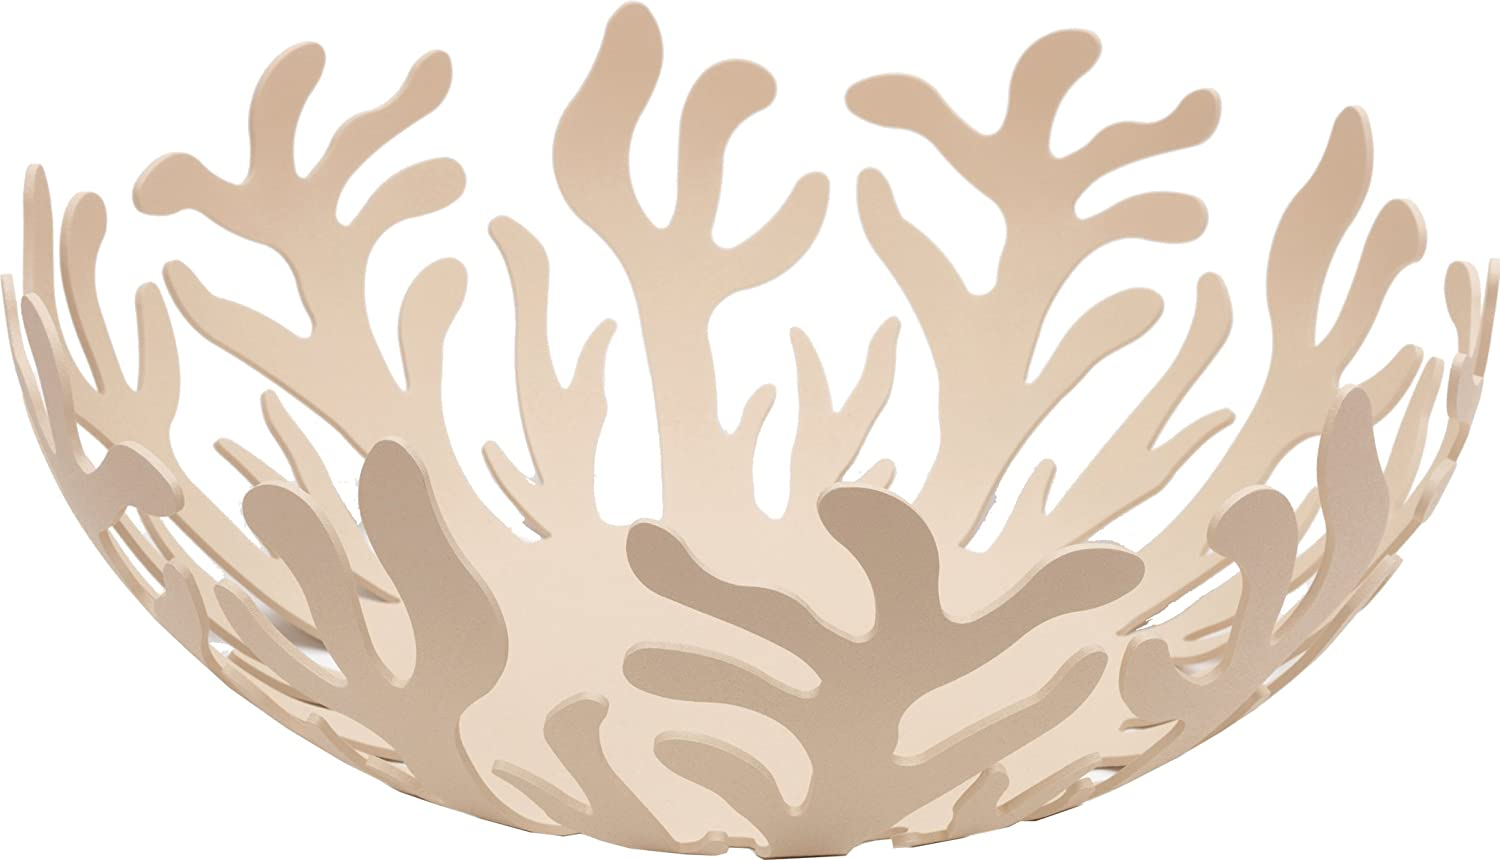 Alessi 25 cm Mediterraneo Fruit Holder in Steel Coloured with Epoxy ResinRed ESI01/25 R